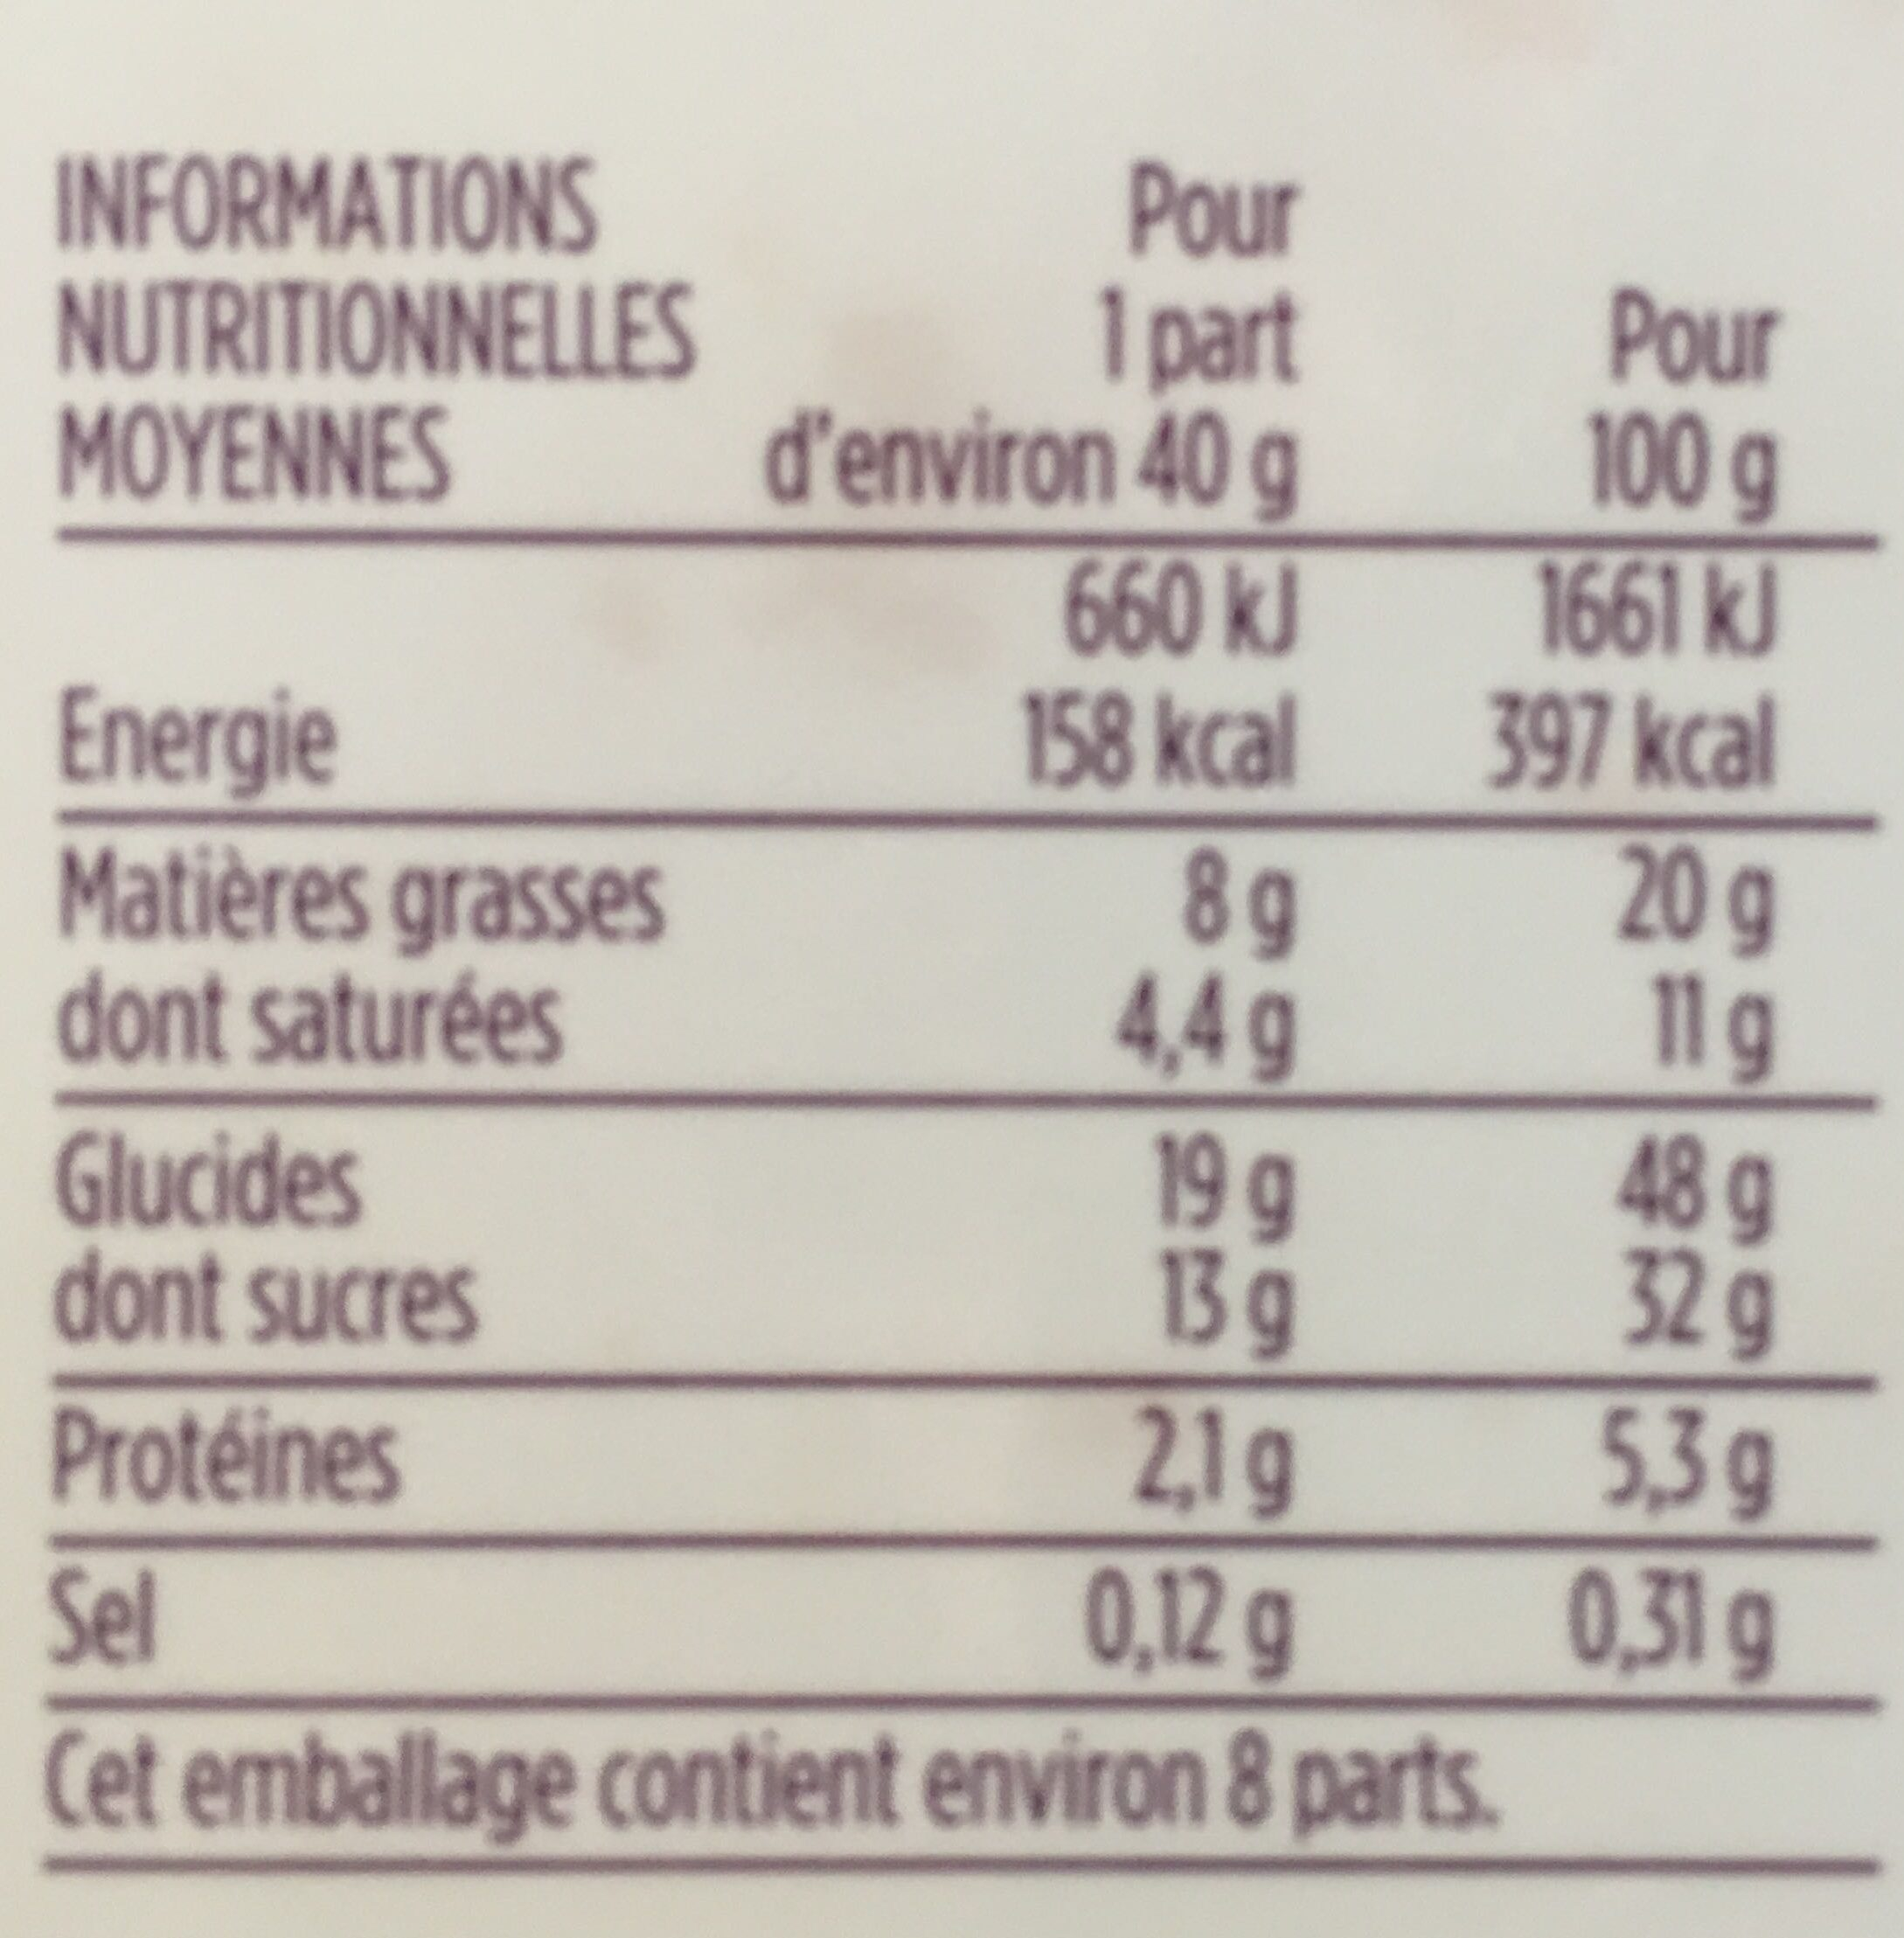 Cake gourmand citron - Nutrition facts